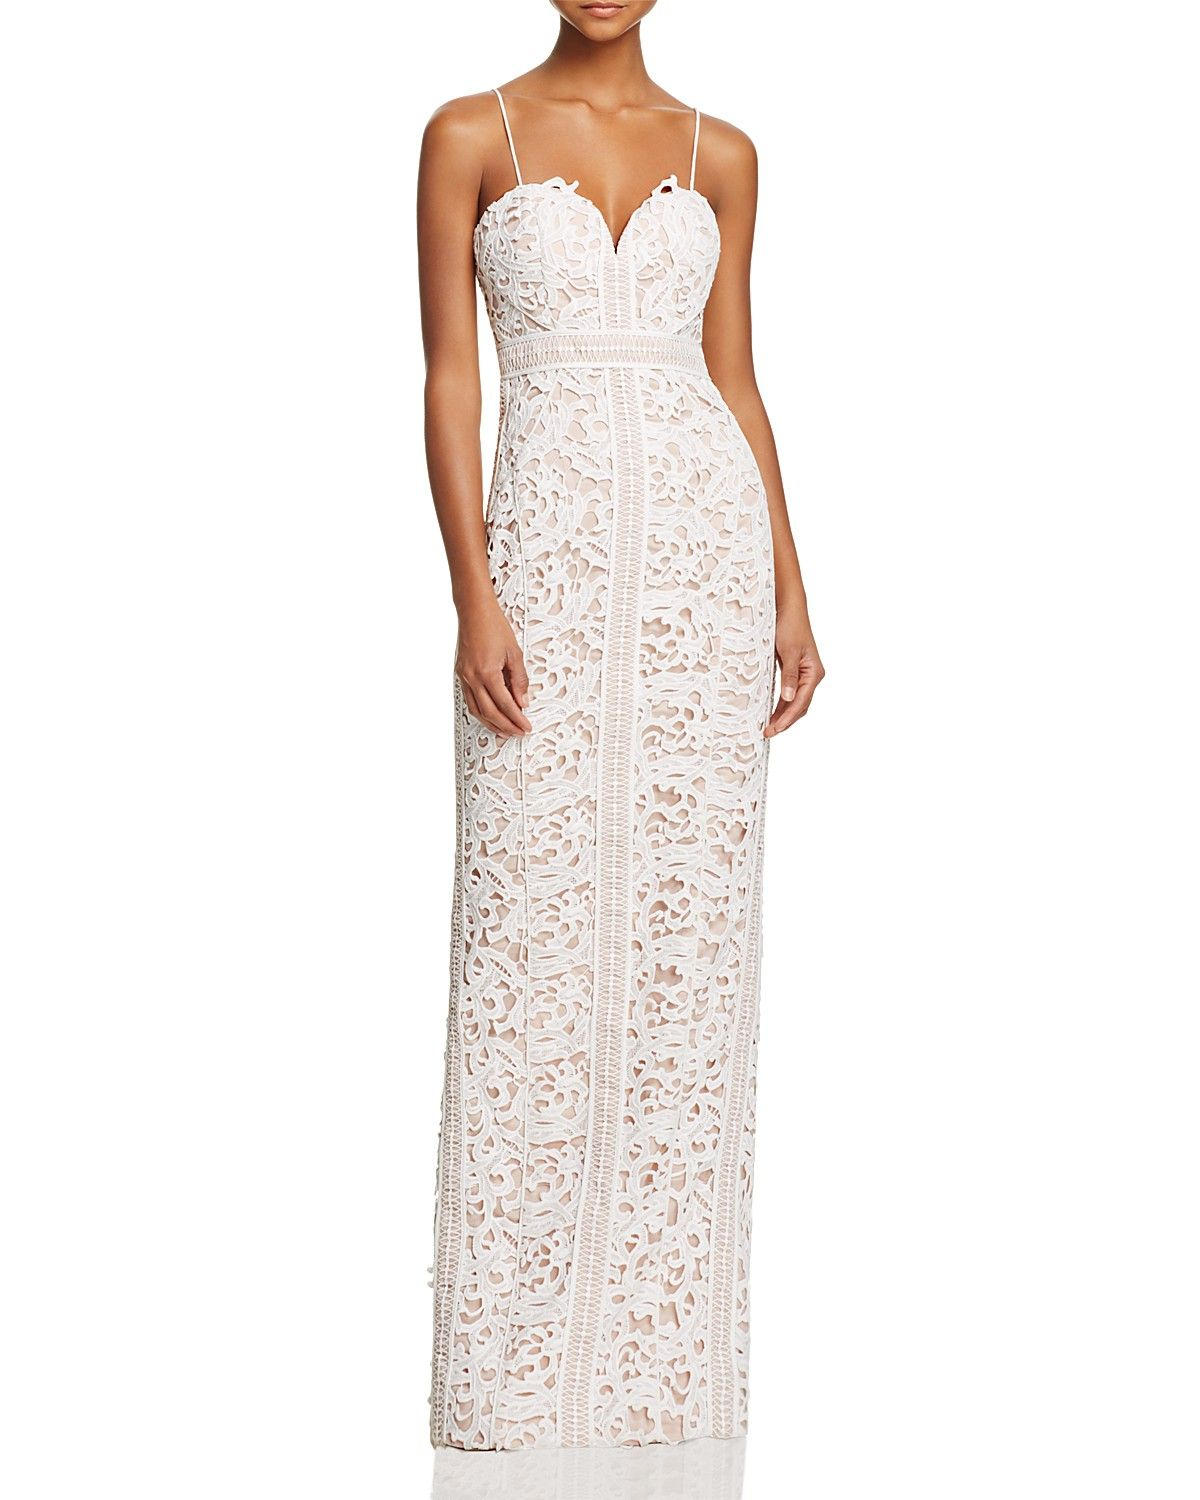 Bariano Sweetheart Lace Gown 100 Exclusive Women Dresses Evening Formal Gowns Bloomingdale S Lace Gown Bariano Formal Evening Dresses [ 1500 x 1200 Pixel ]